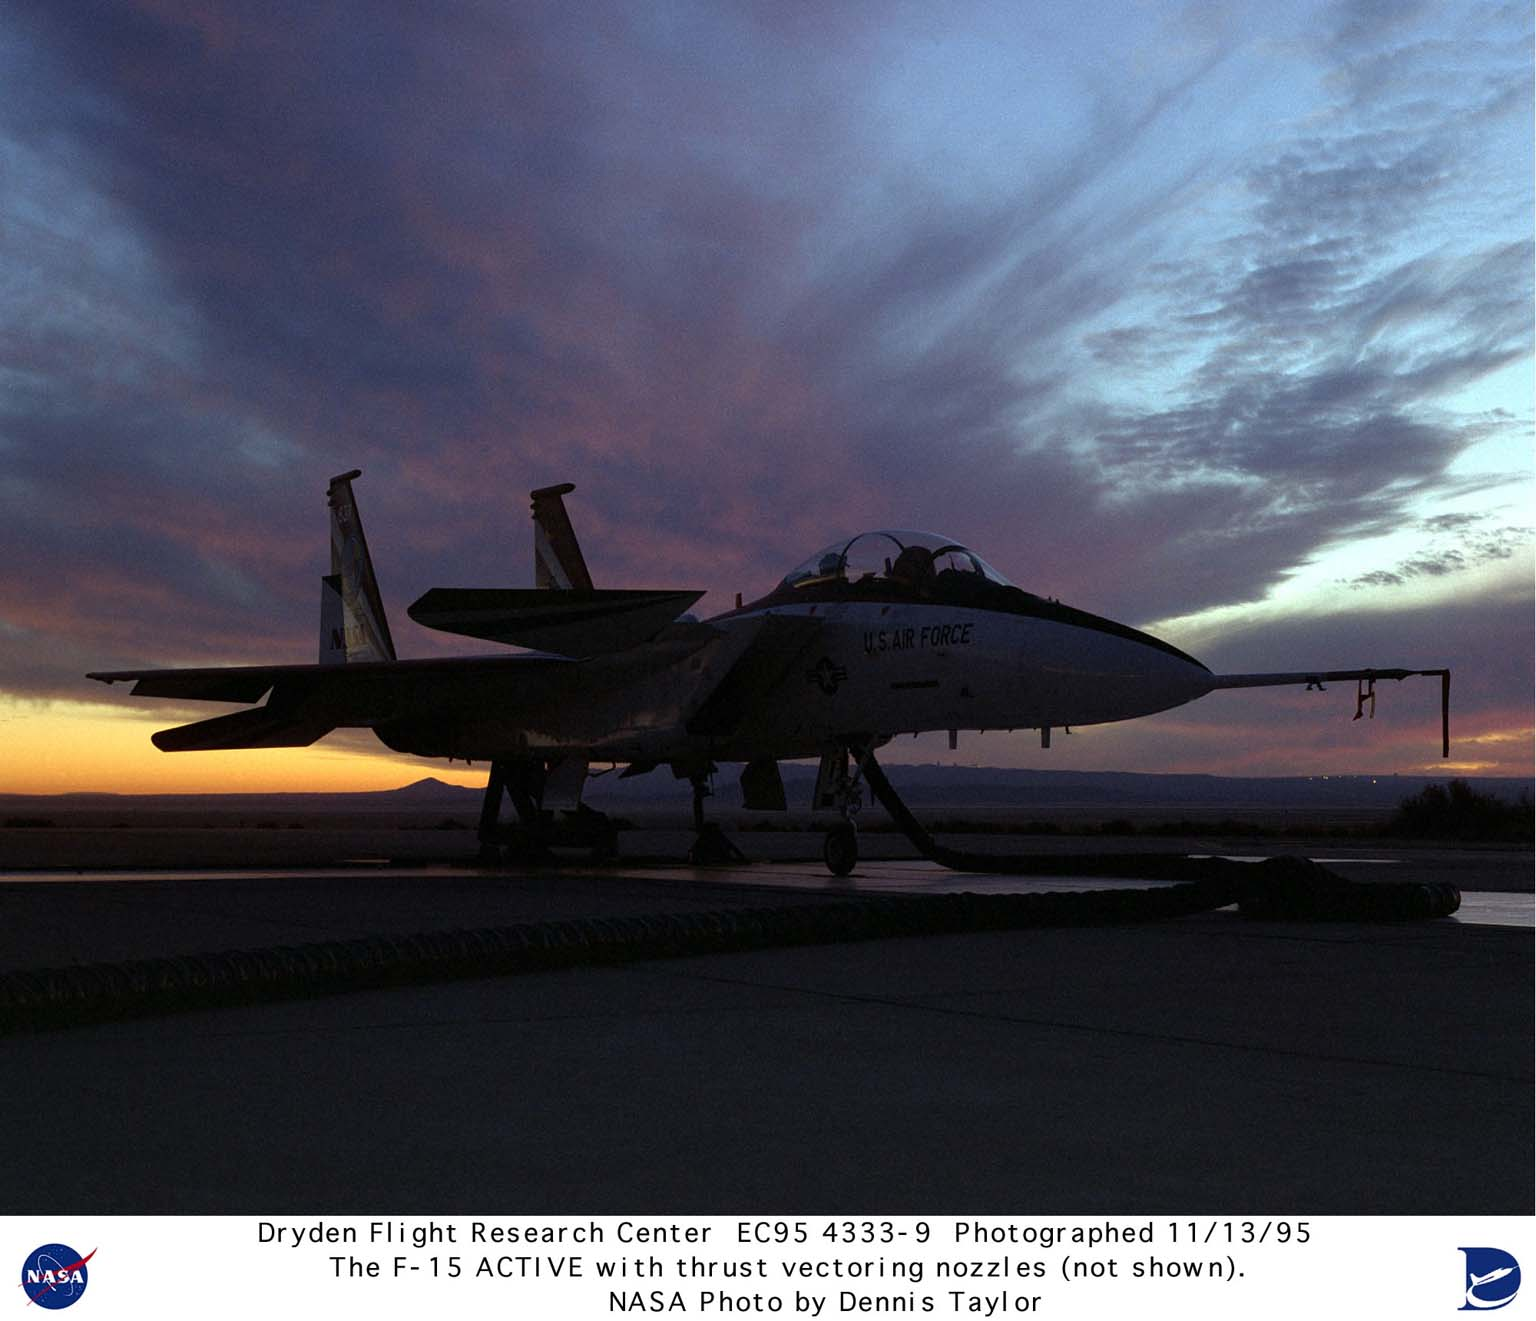 This November 13, 1995, photograph of the F-15 Advanced Controls Technology for Integrated Vehicles (ACTIVE) at NASA's Dryden Flight Research Center, Edwards, California, shows the aircraft on a test stand at sunrise. Not shown in this photograph are the aircraft's two new Pratt & Whitney nozzles that can turn up to 20 degrees in any direction. These nozzles give the aircraft thrust control in the pitch (up and down) and yaw (left and right) directions. This will reduce drag and increase fuel economy or range as compared with conventional aerodynamic controls, which increase the retarding forces (drag) acting upon the aircraft. These tests could result in significant performance increases for military and commercial aircraft. The research program is the product of a collaborative effort by NASA, the Air Force's Wright Laboratory, Pratt & Whitney, and McDonnell Douglas Aerospace. The aircraft was originally built as an F-15B (Serial #71-0290).